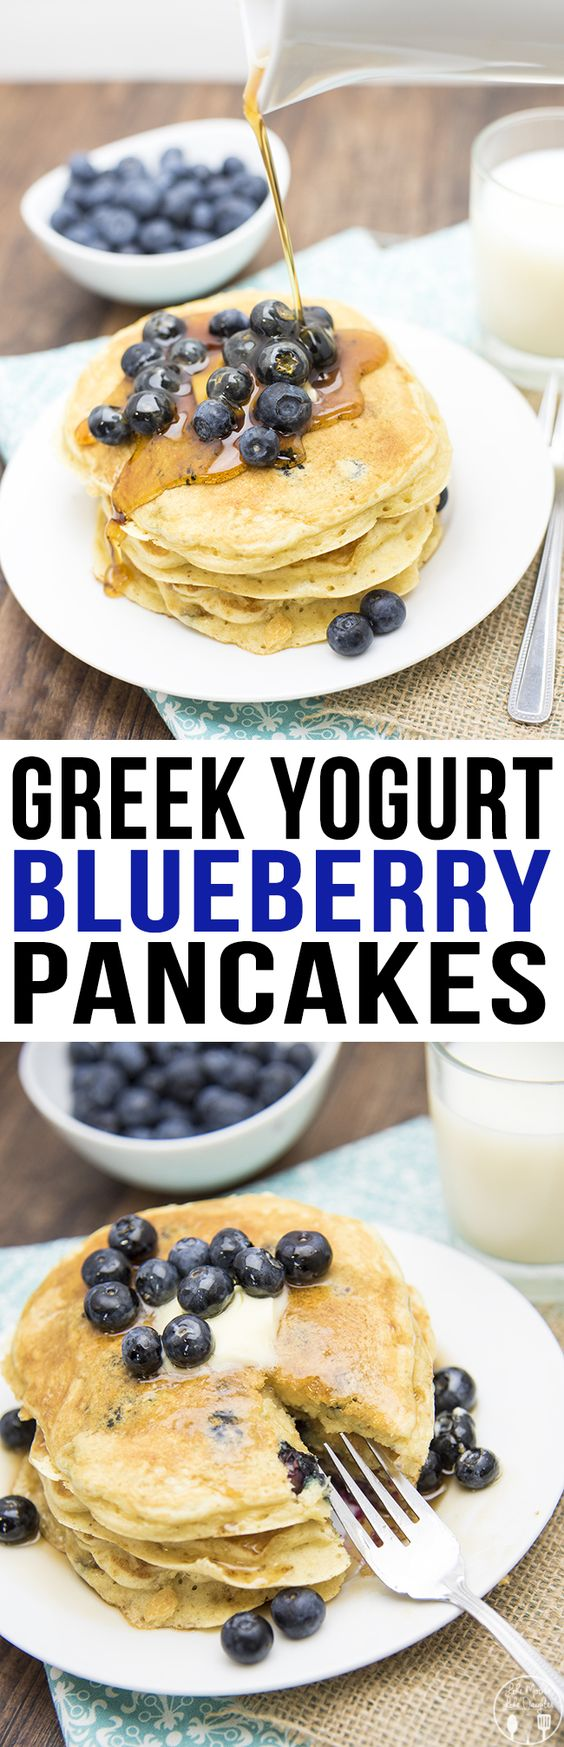 Greek Yogurt Blueberry Pancakes - These are the best pancakes ever ...